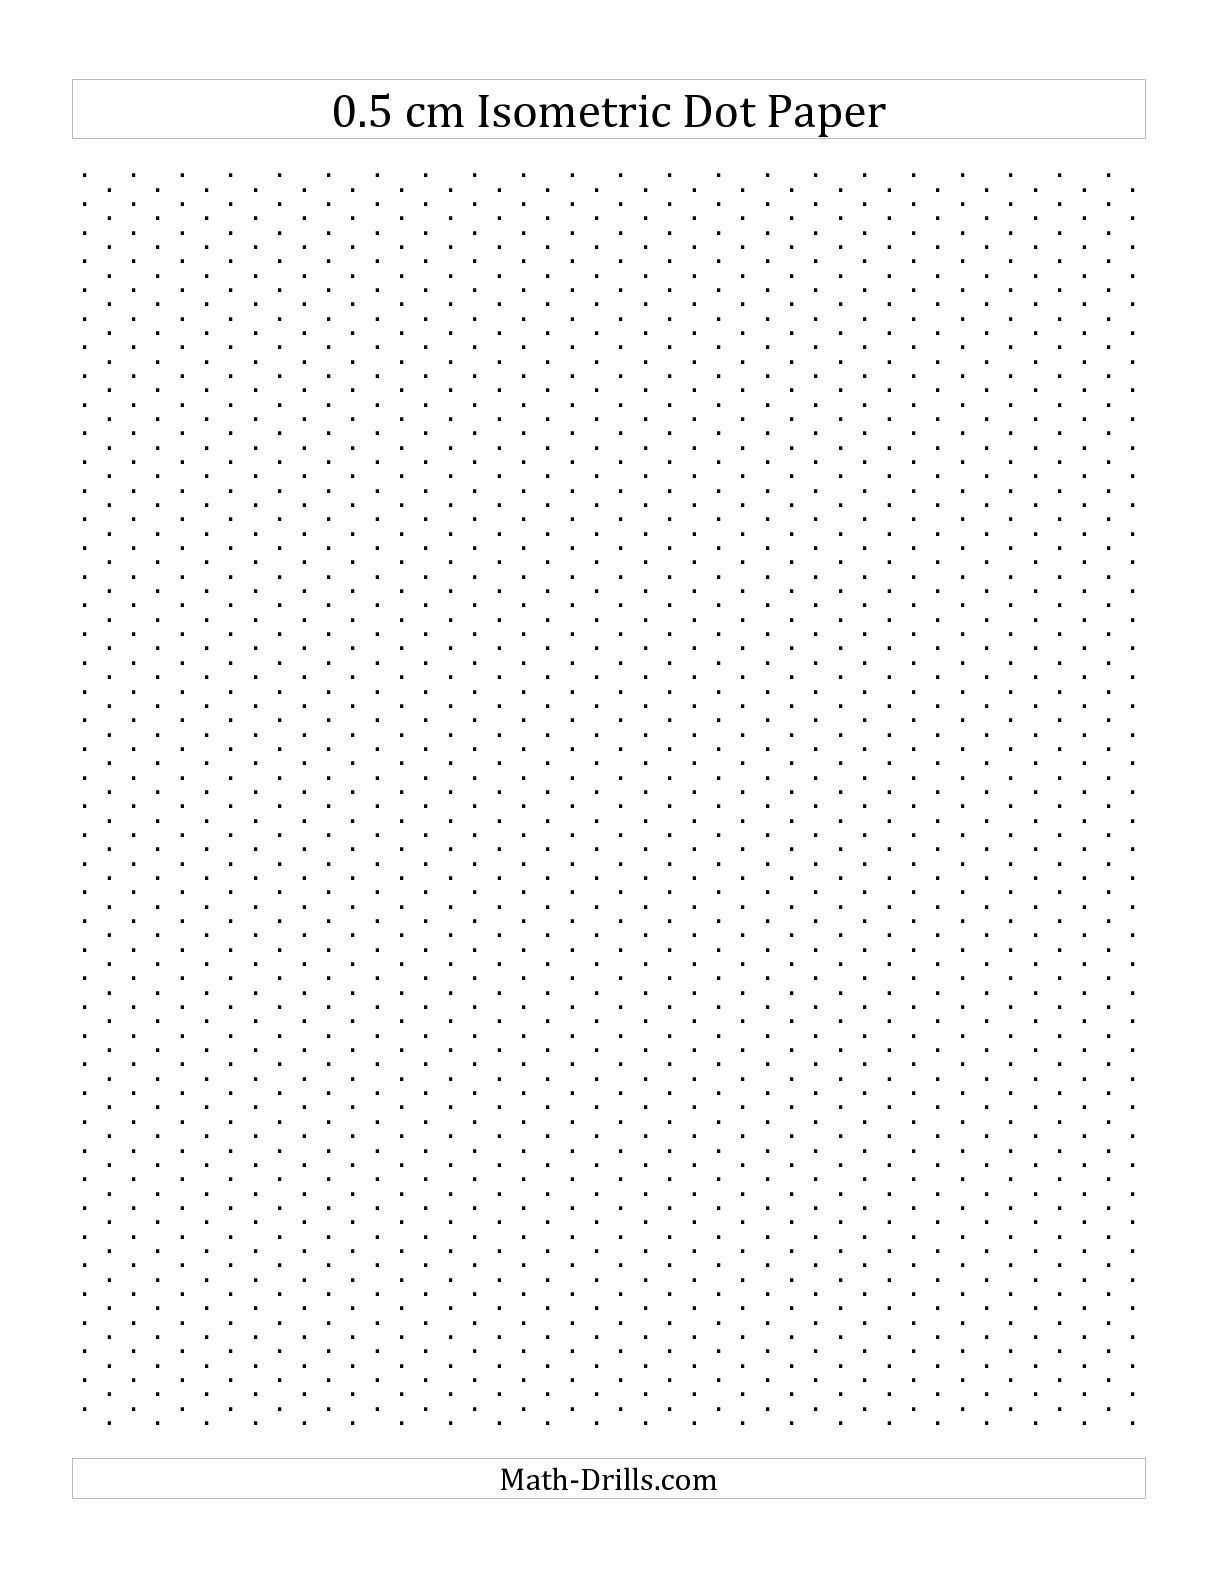 Math Drills Graph Paper the 0 5 Cm isometric Dot Paper Portrait A Graph Paper